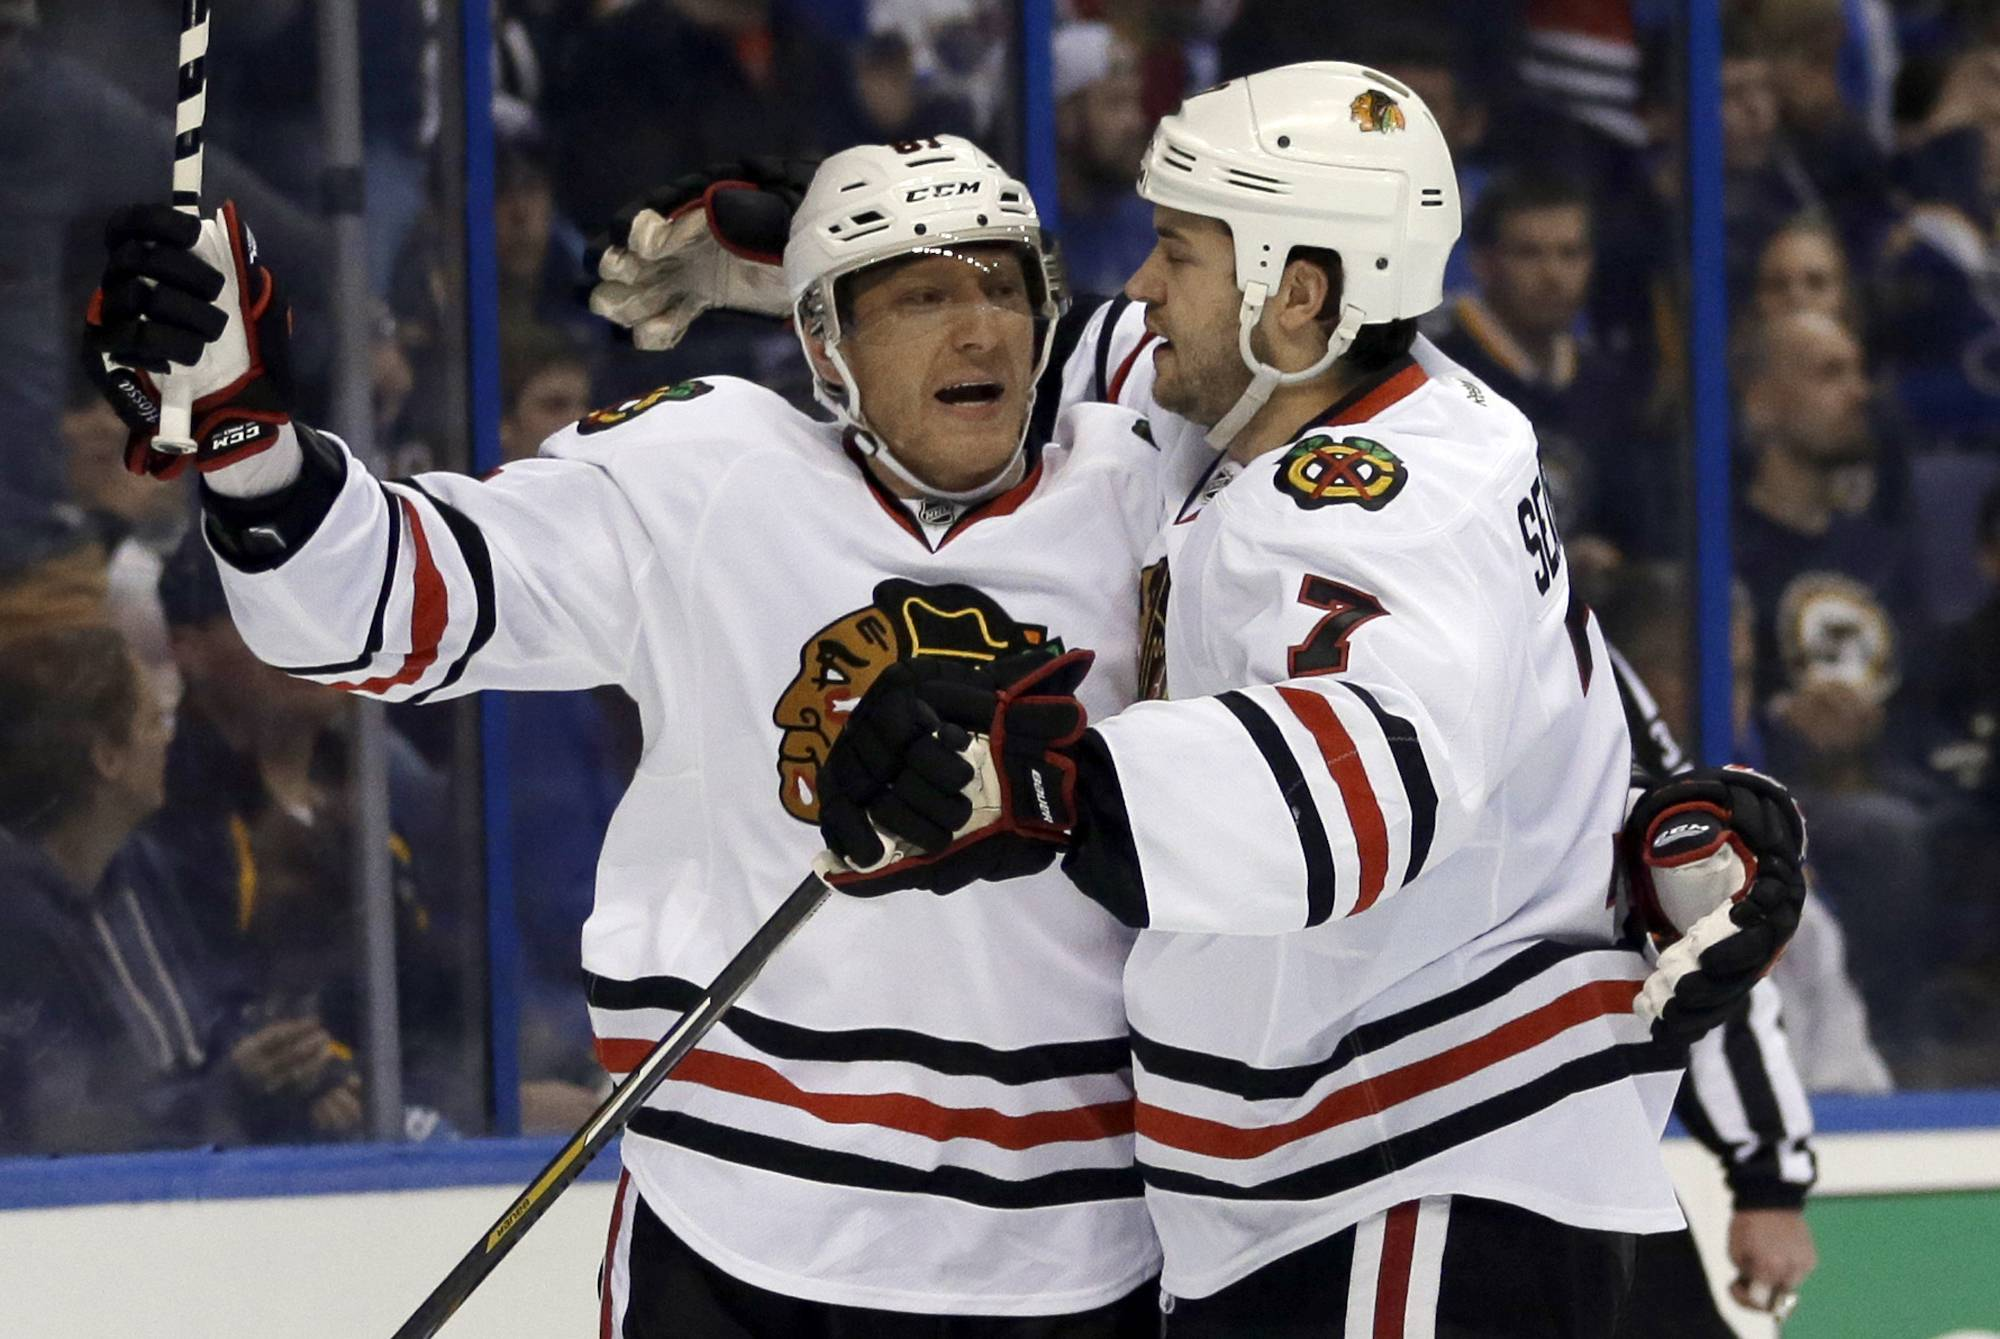 Chicago Blackhawks' Brent Seabrook, right, is congratulated by Marian Hossa after scoring during the first period.